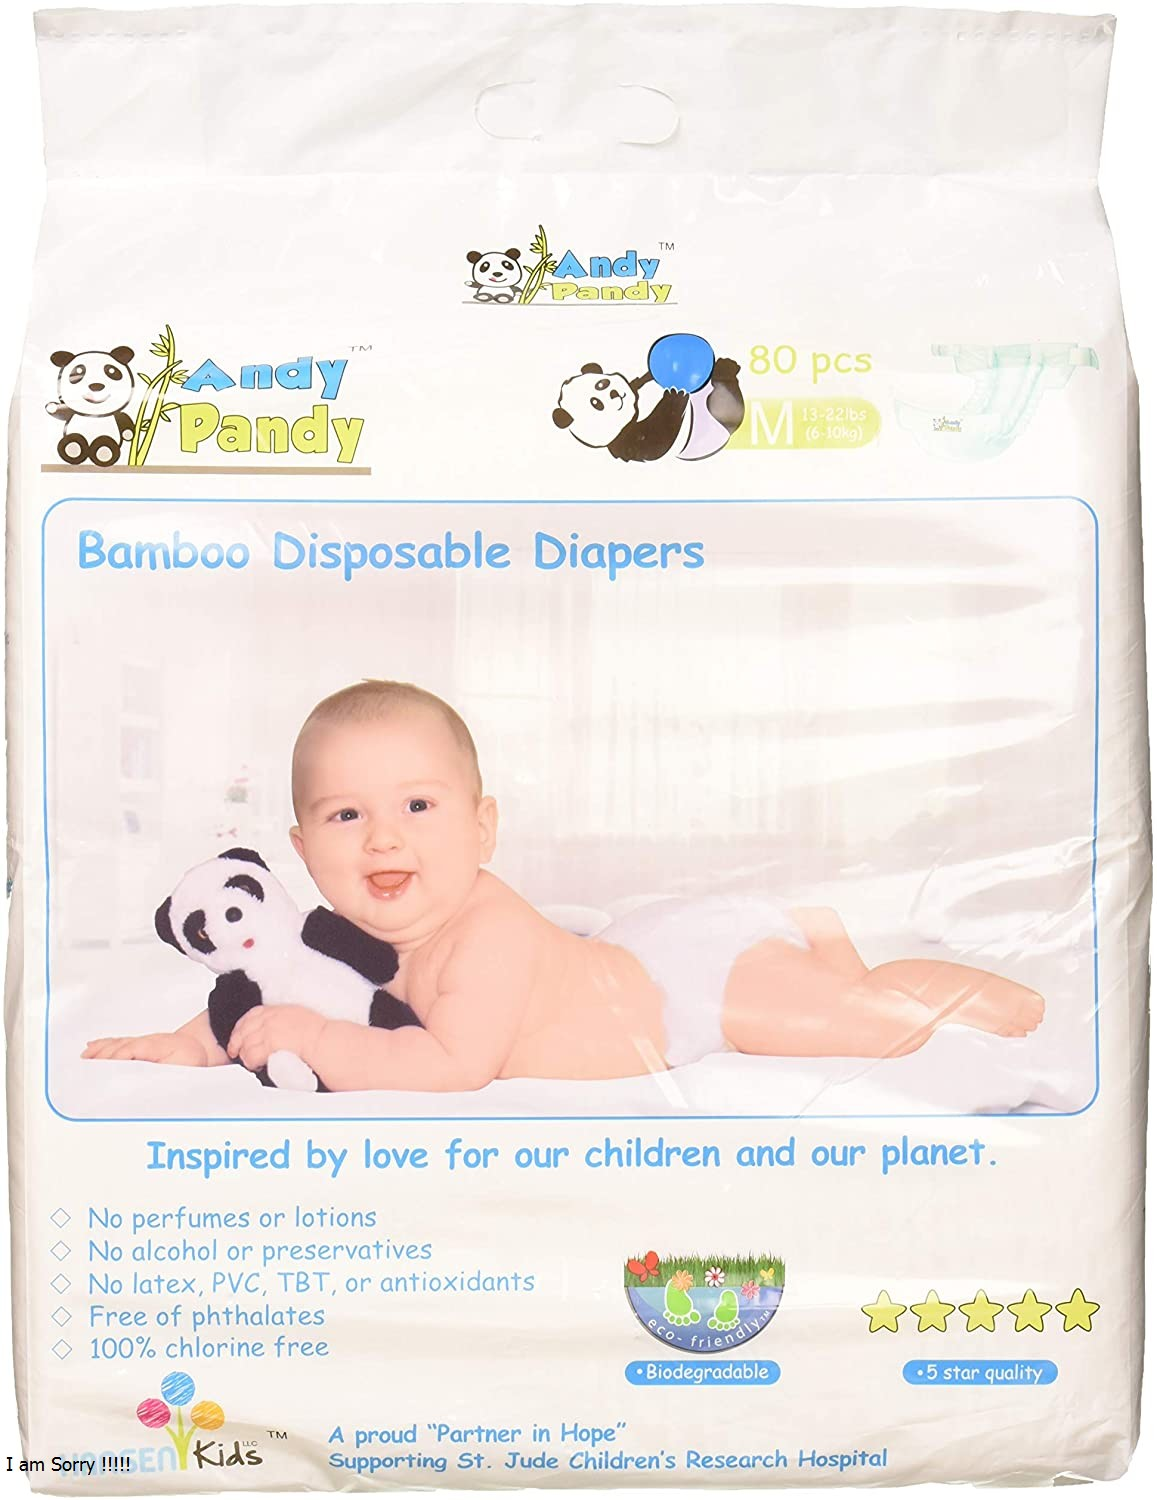 Andy Pandy Diaper